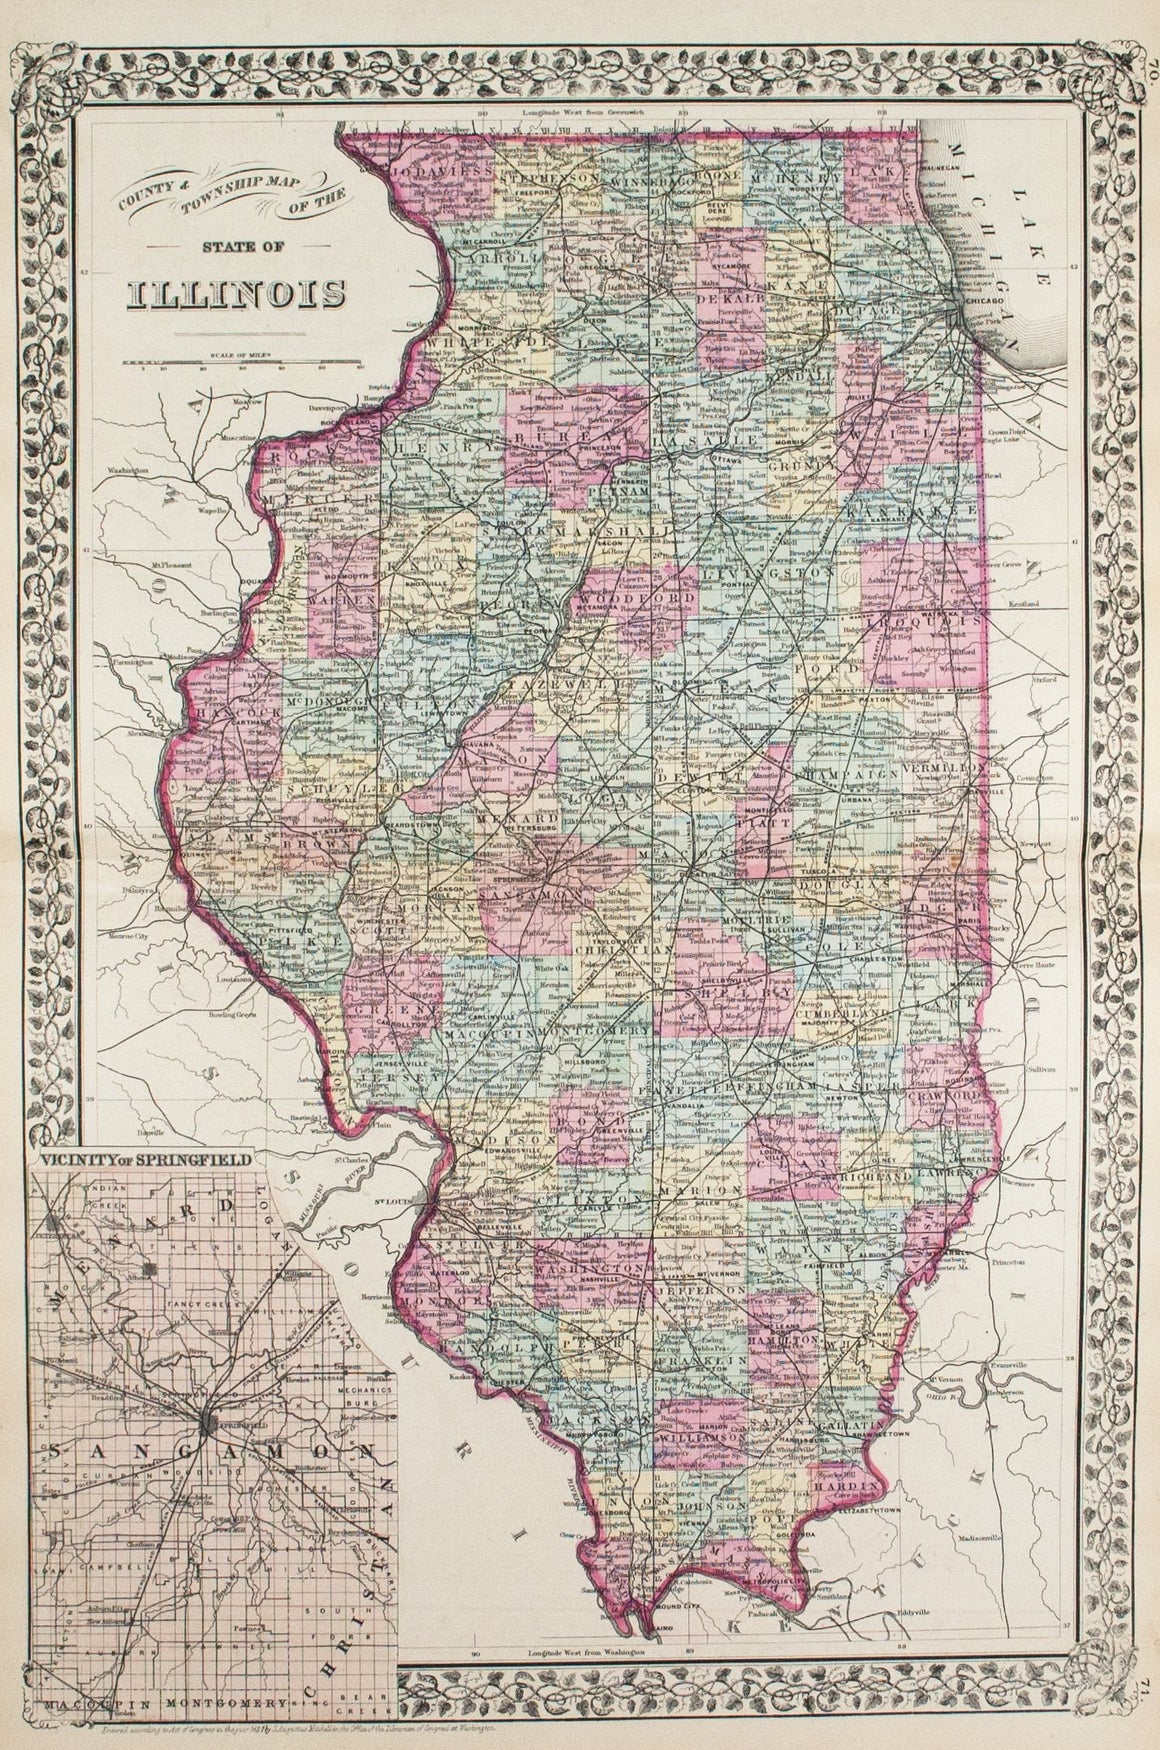 1881 County and Township Map of the State of Illinois - S Mitchell Jr